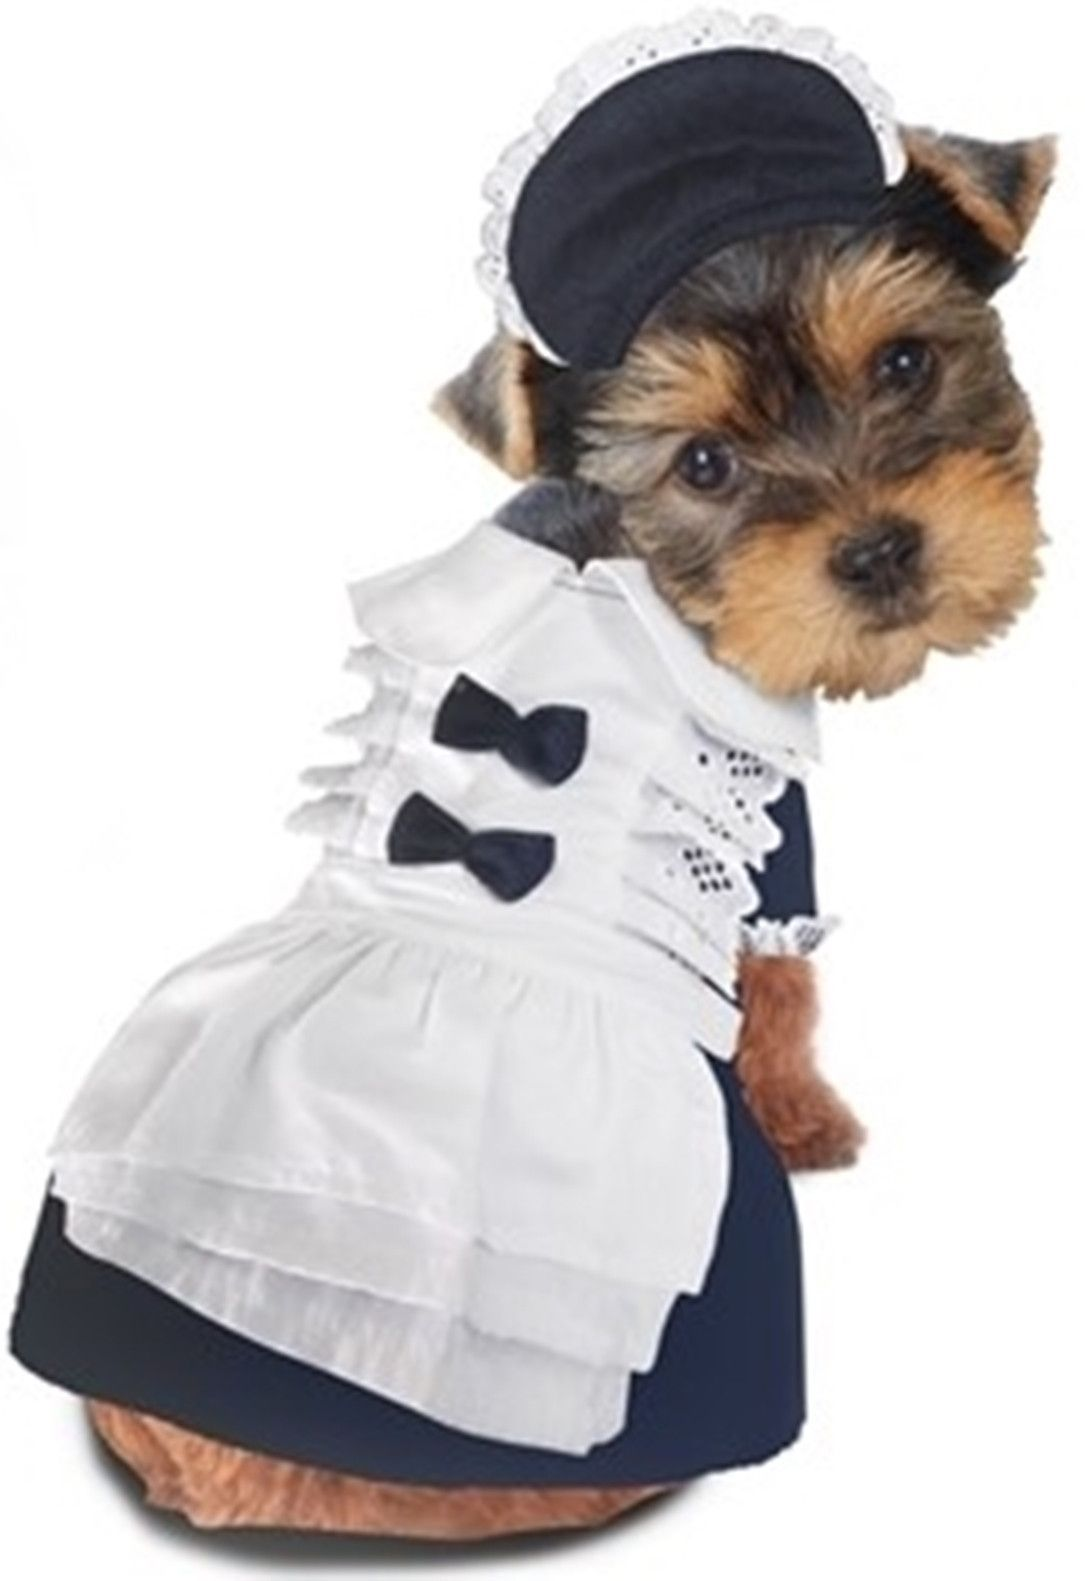 Classic French Maid Uniform With Bonnet Dog Costume French